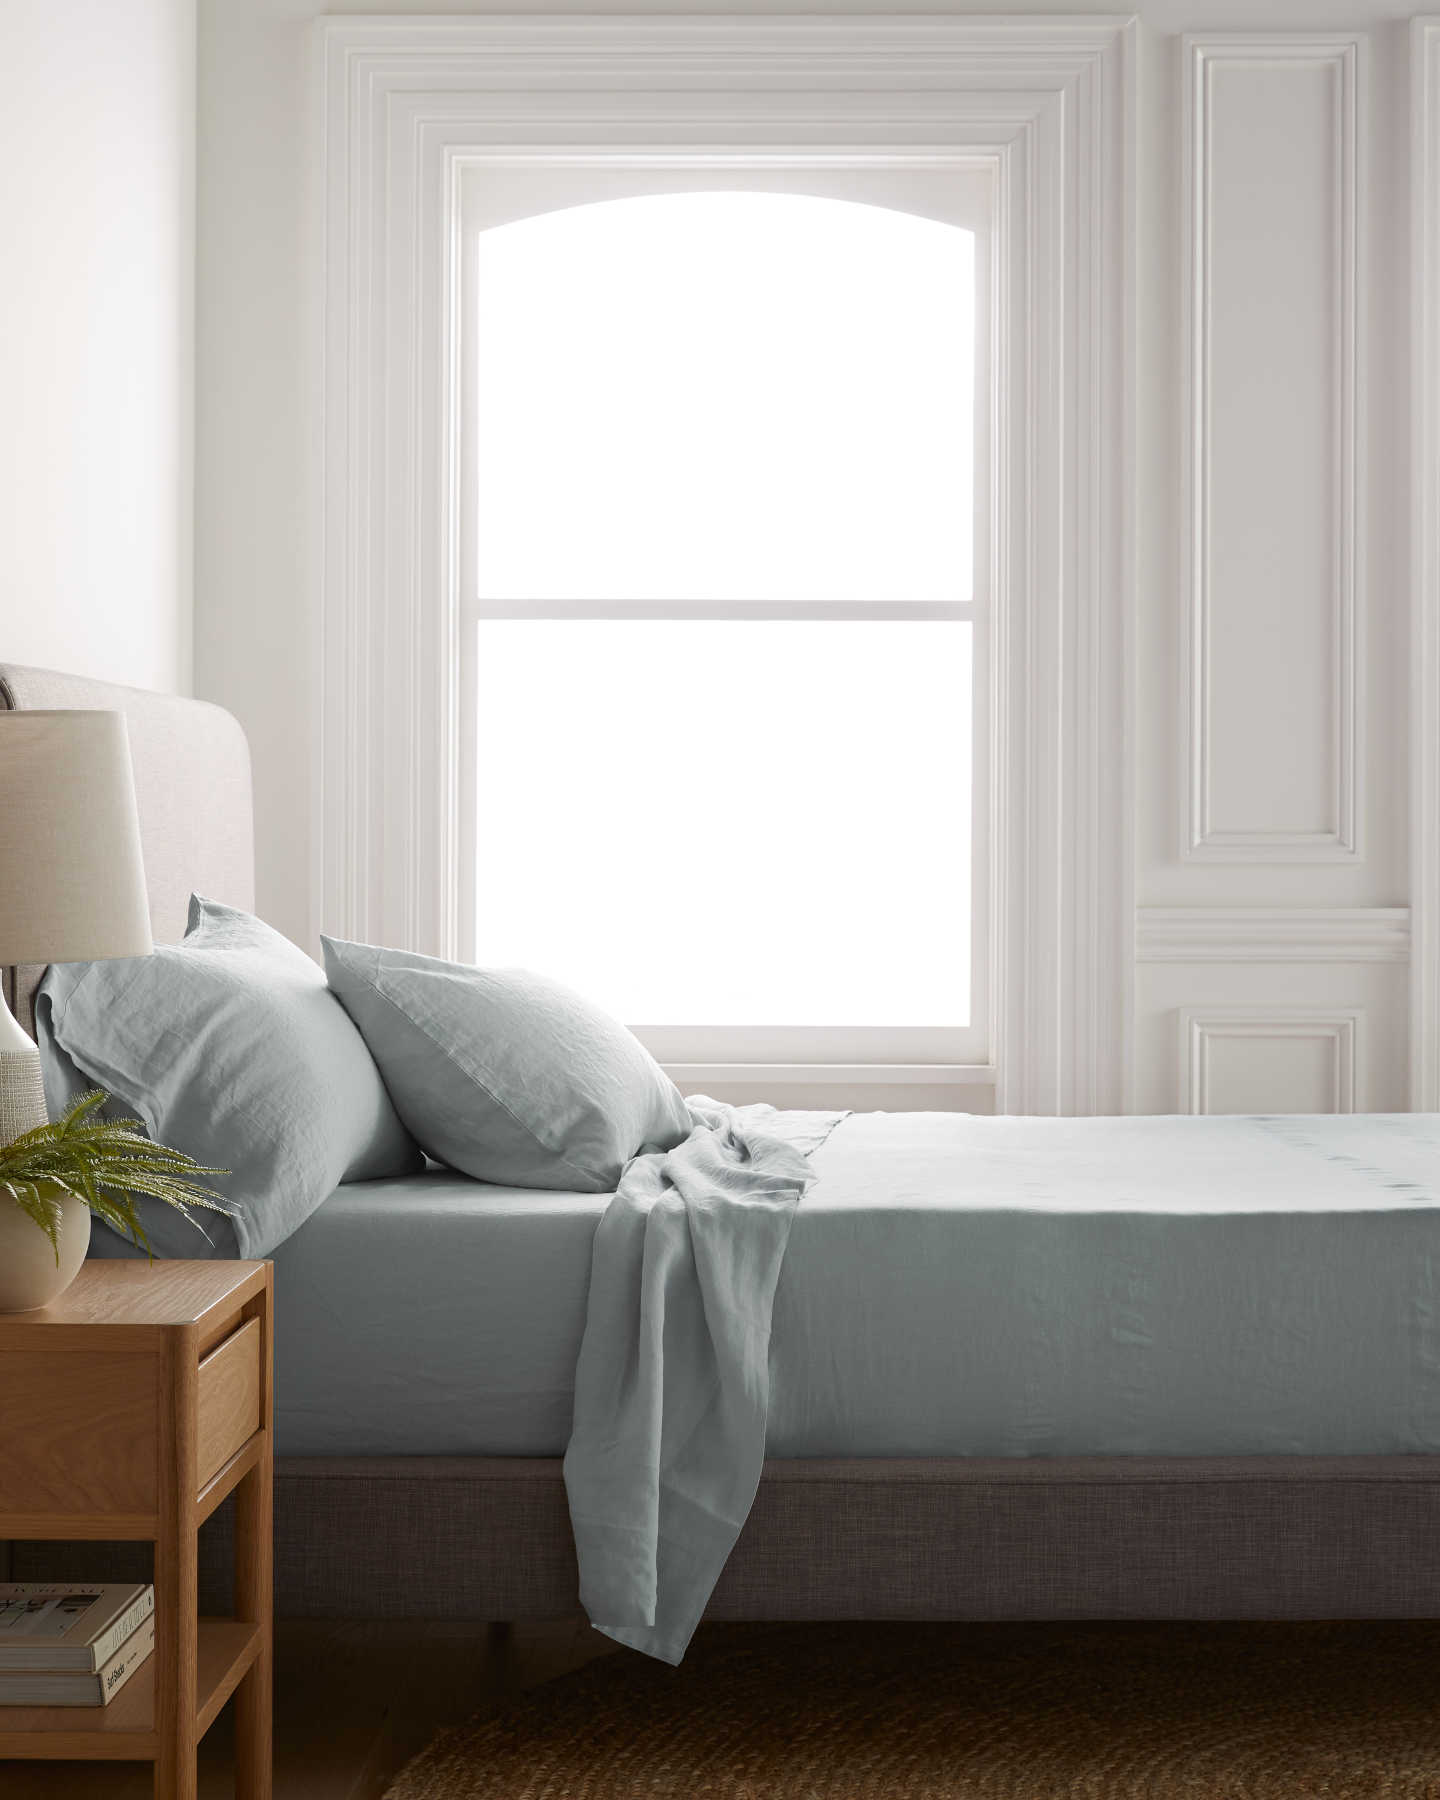 Belgian Linen Sheet Set - Mist - 1